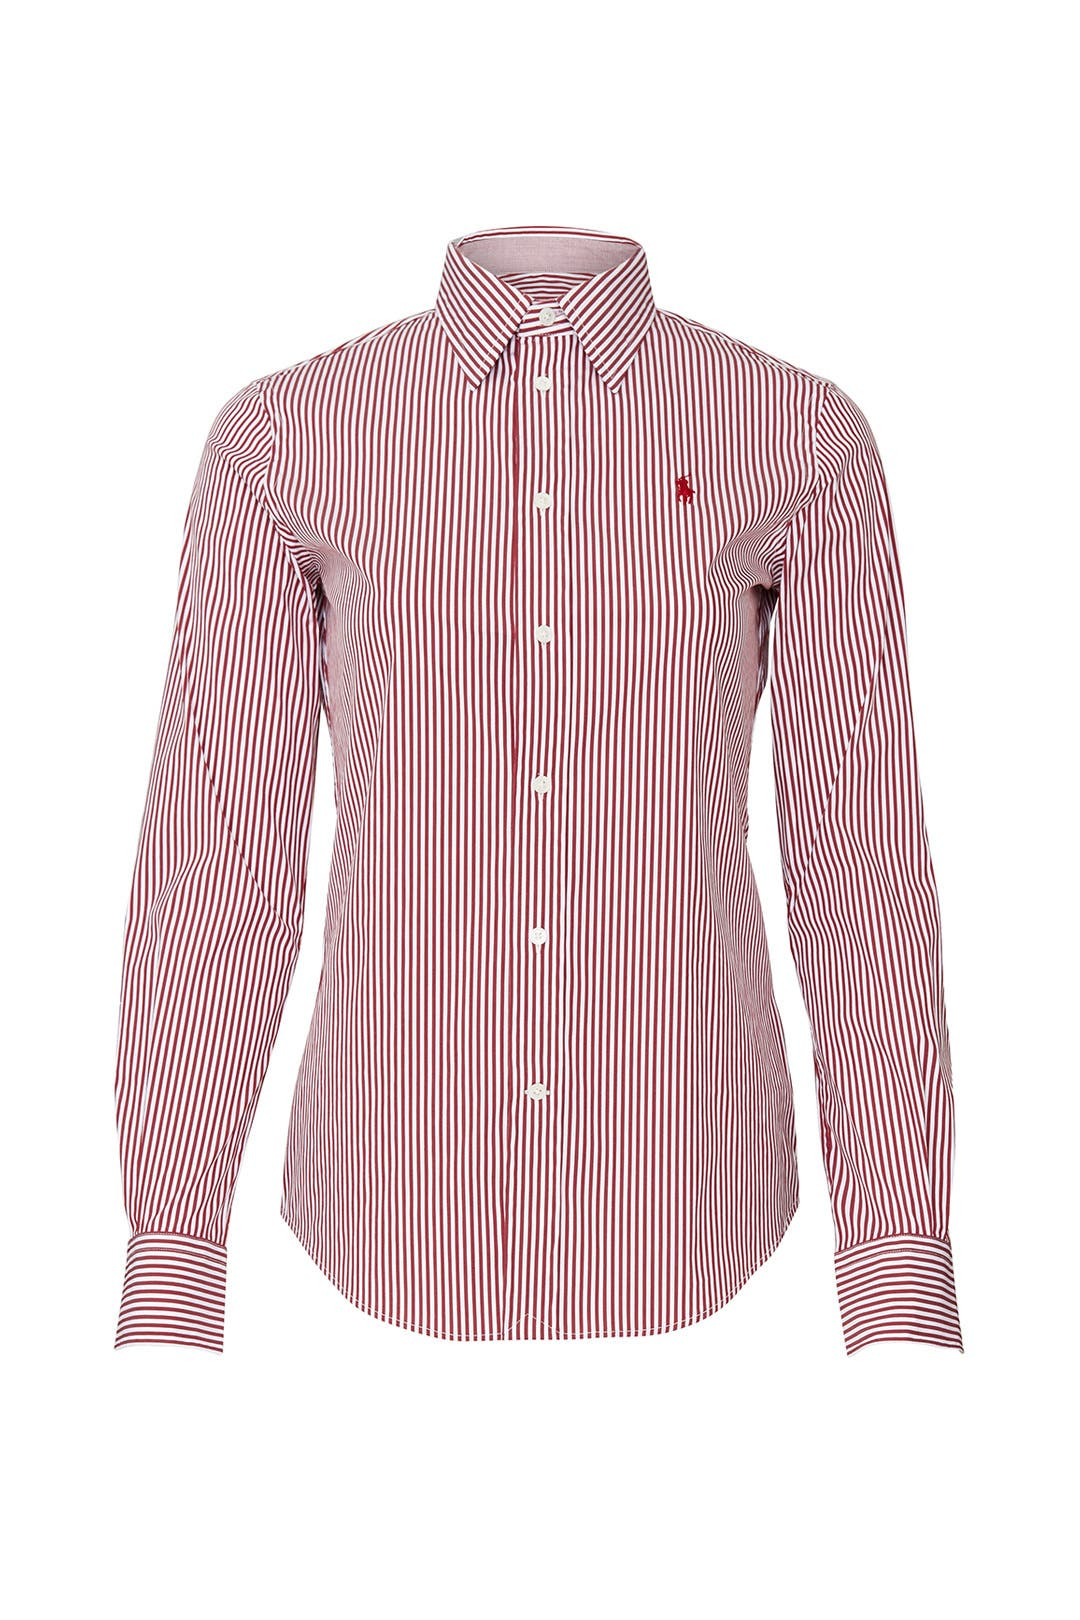 Lauren Shirt Striped Ralph Red Polo P0kwXN8nO